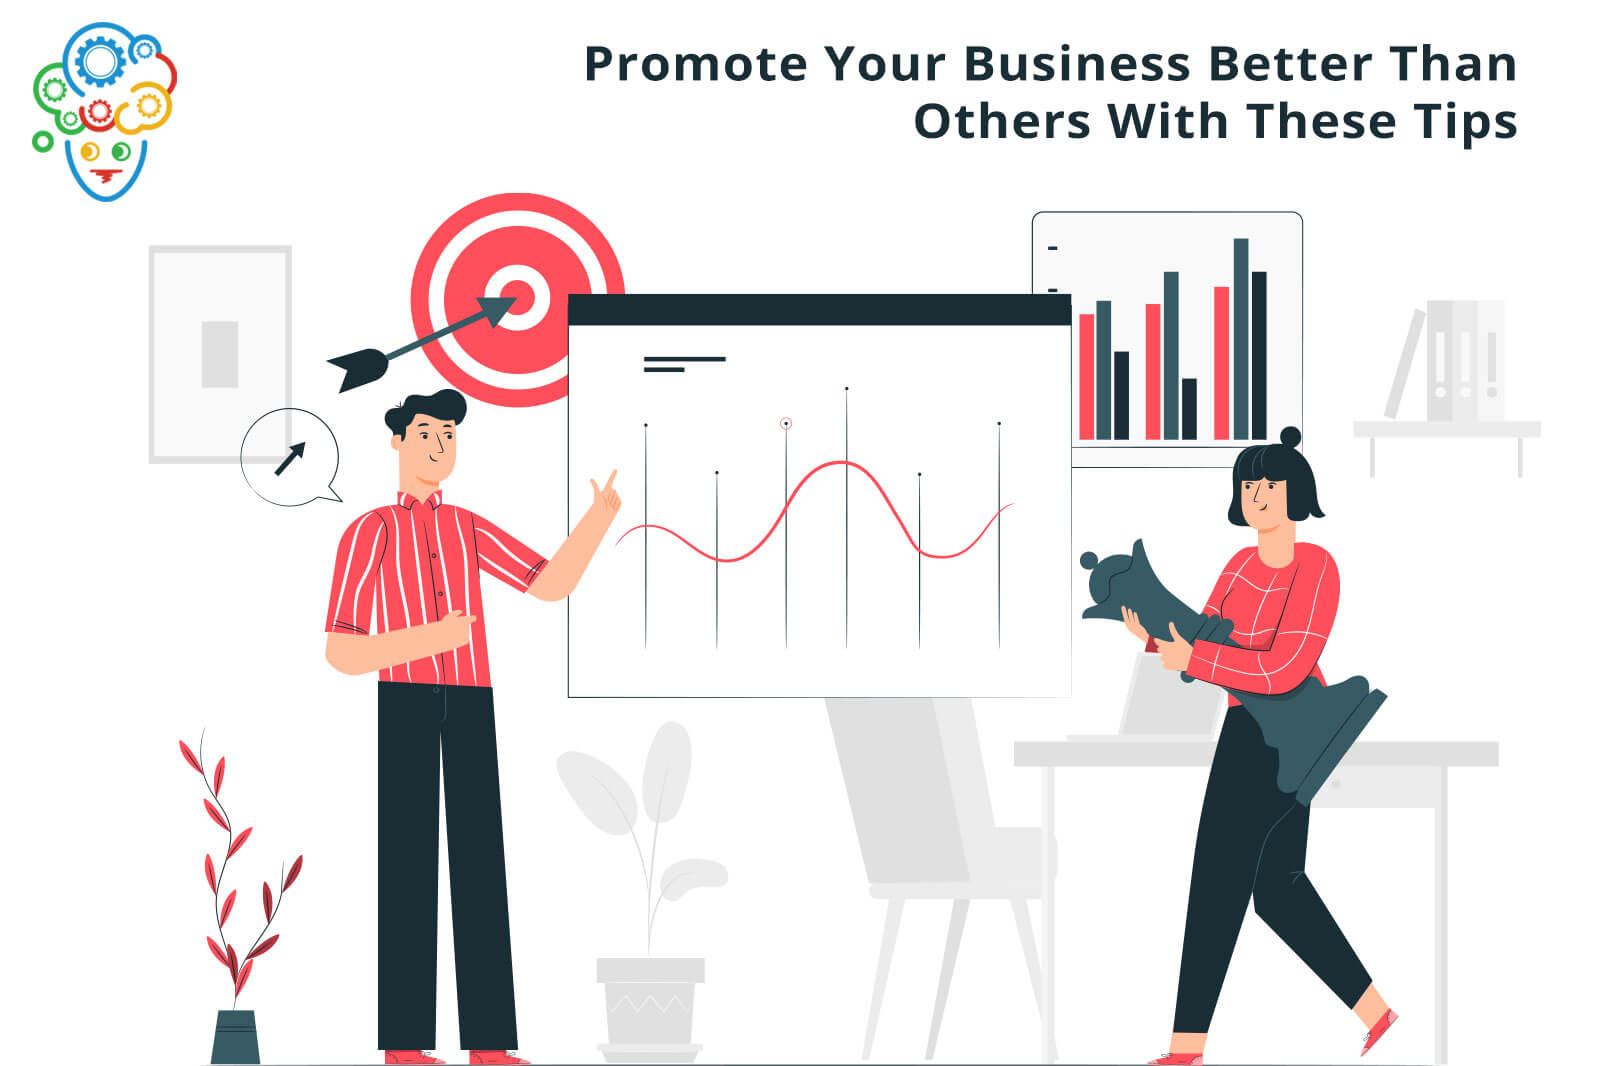 Promote Your Business Better Than Others With These Tips